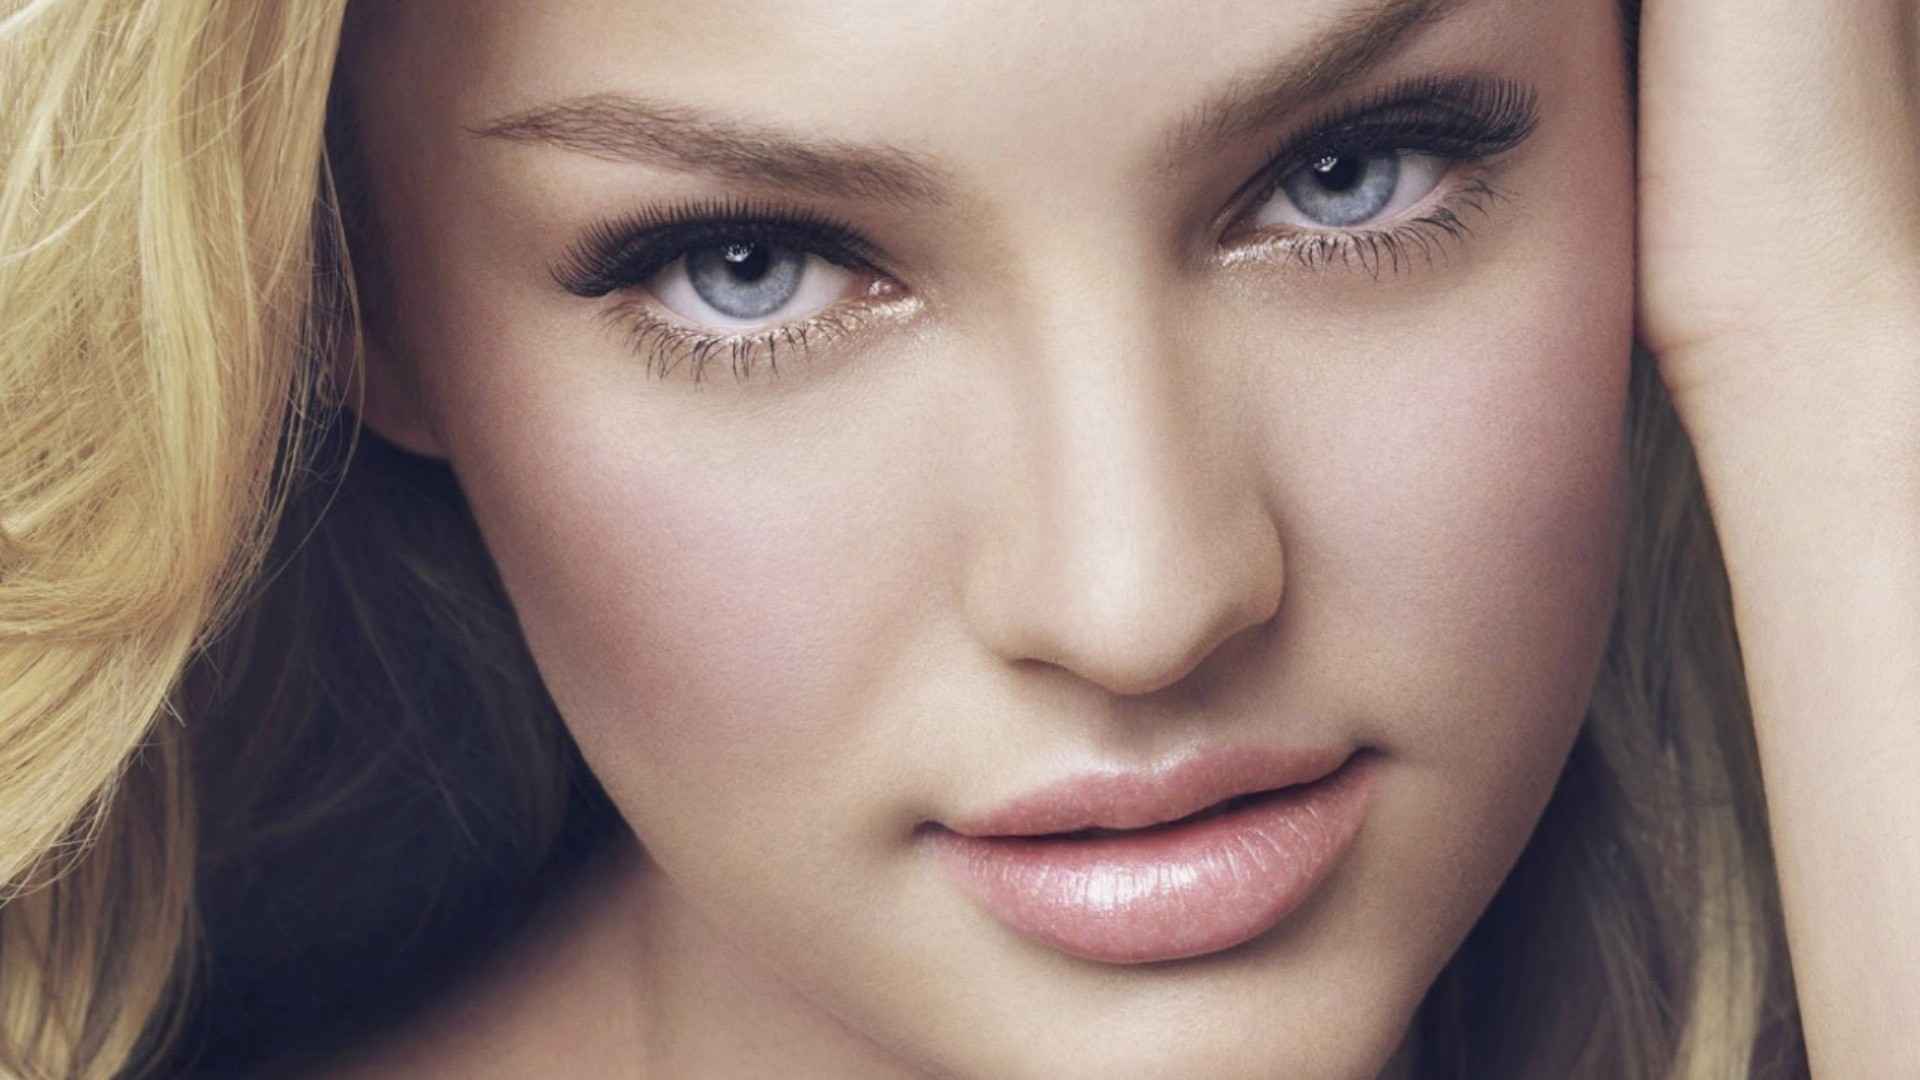 Candice Swanepoel close up HD Wallpaper in Full HD from the People  category. Tags: Blue Eyes, Candice Swanepoel, Close-Up, Make up